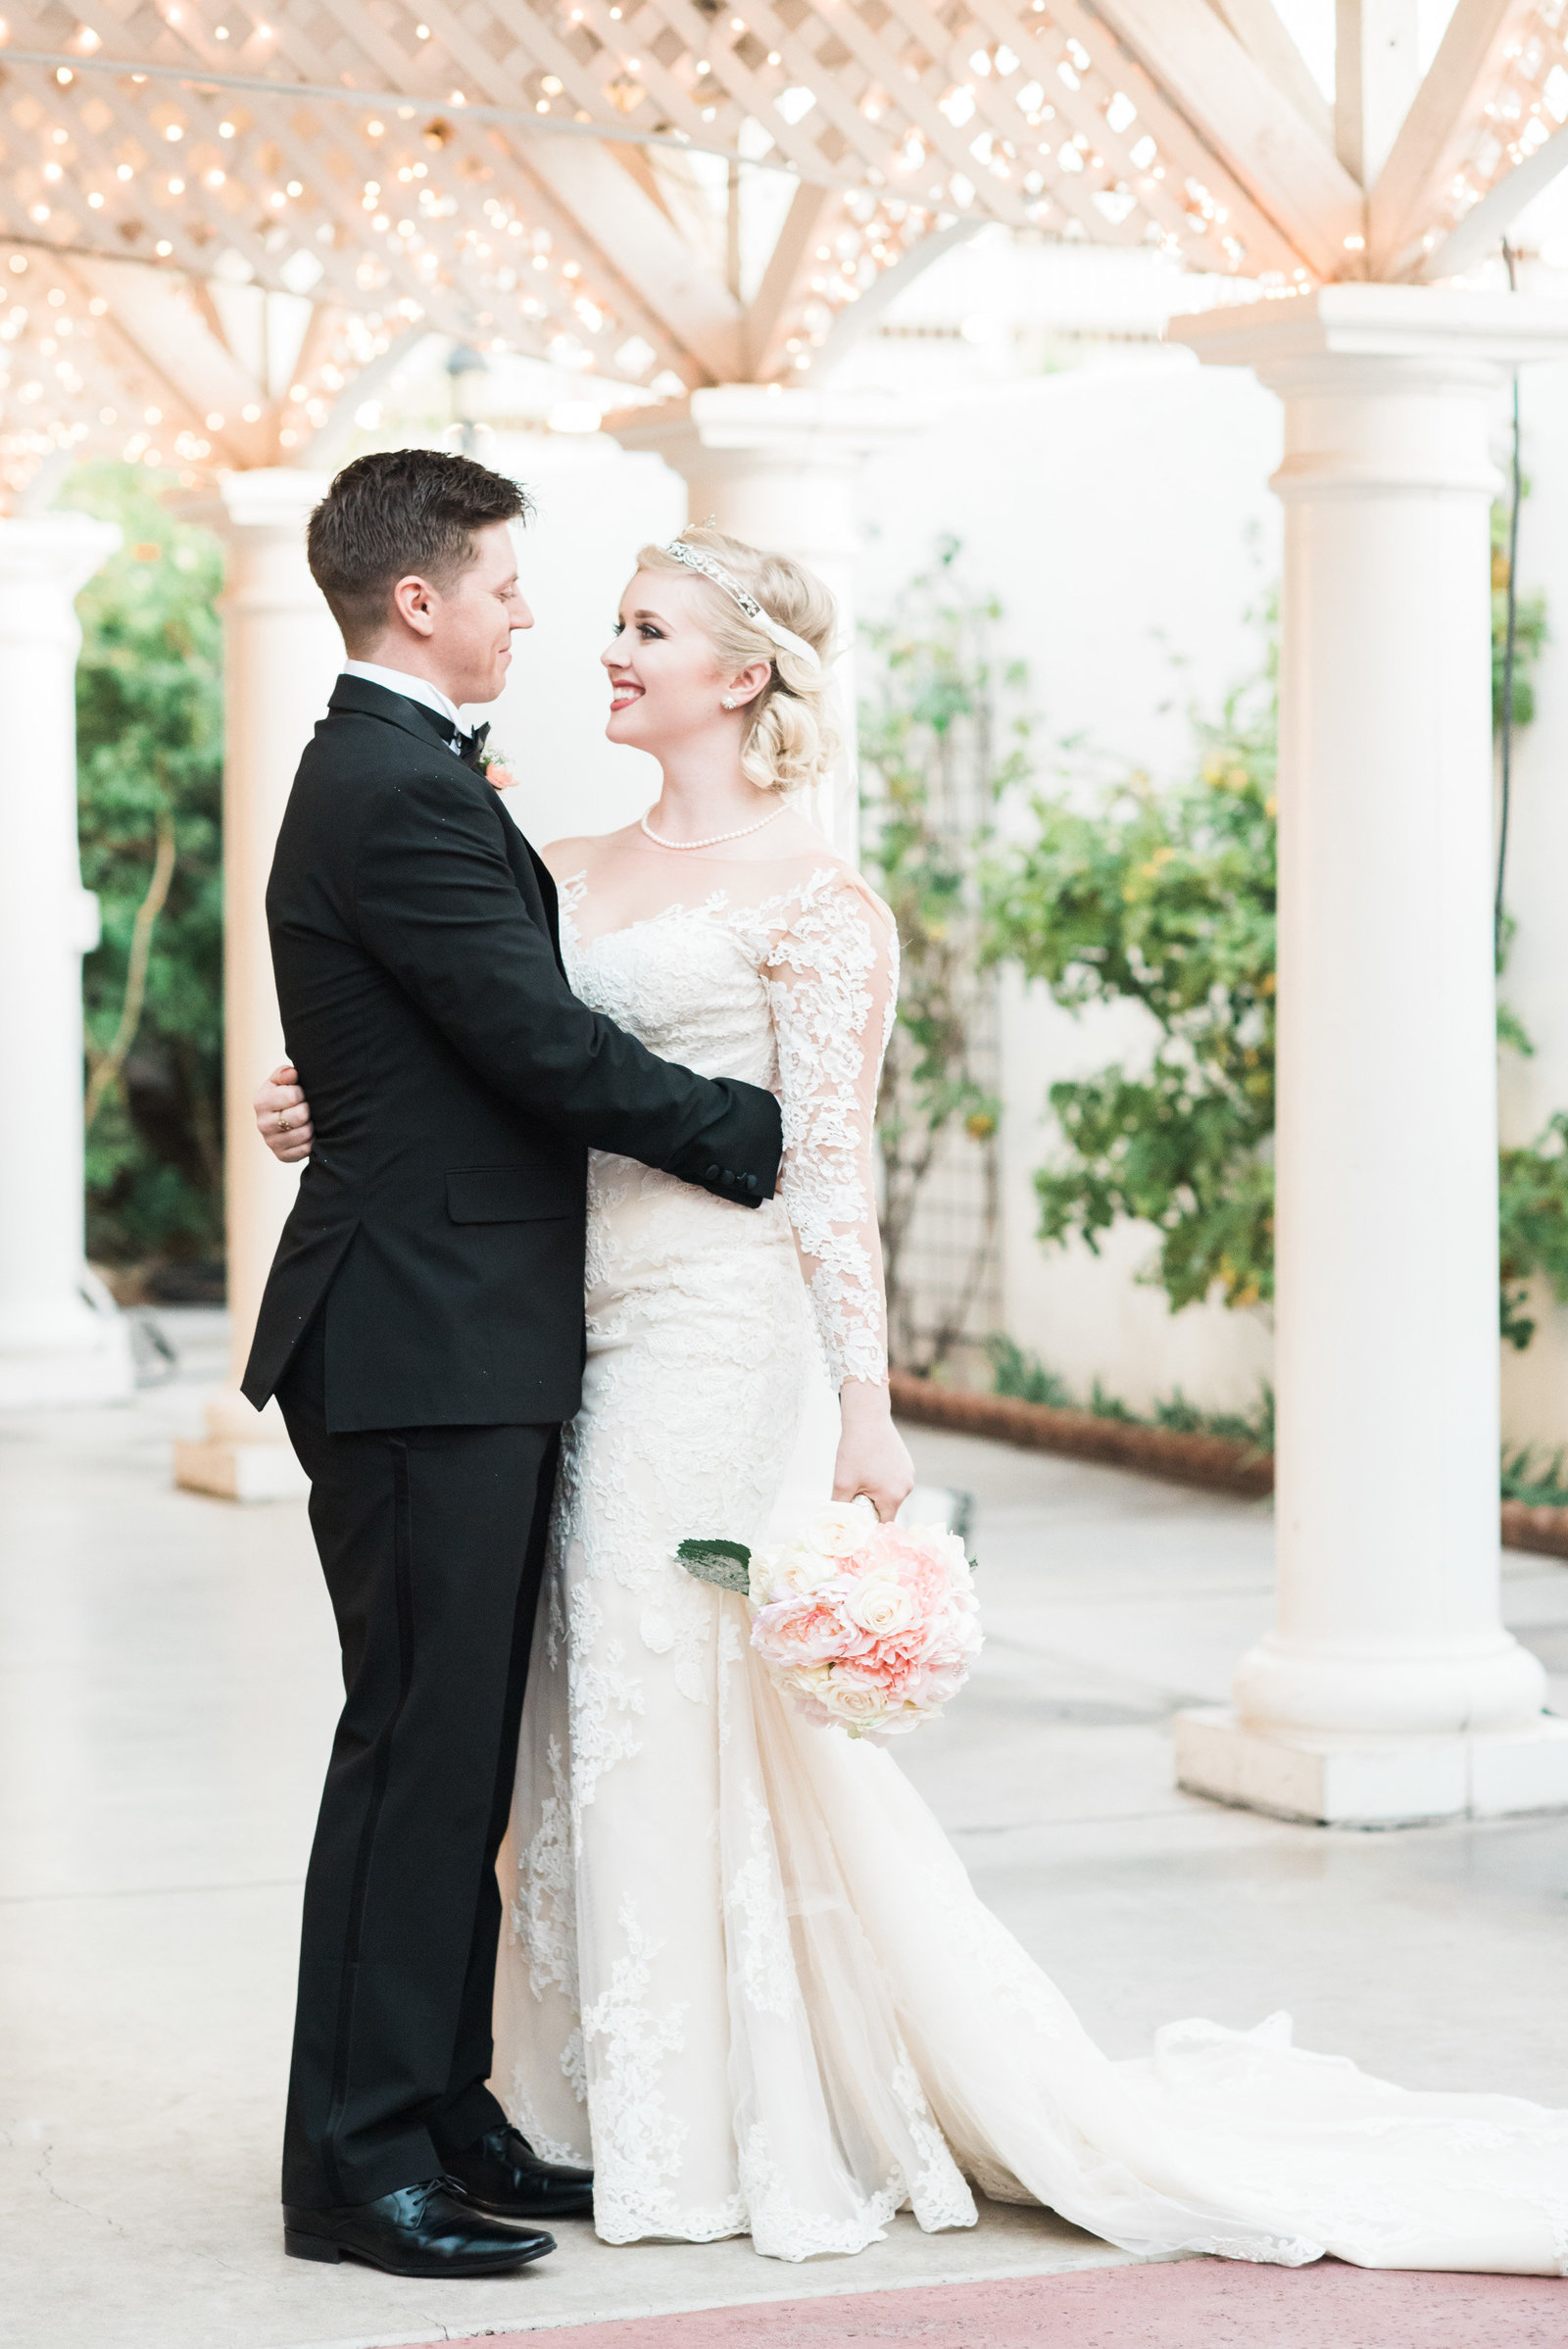 Tucson Z Mansion Downtown  Classic Vintage Bride and Groom Wedding Photo | Tucson Wedding Photographer | West End Photography